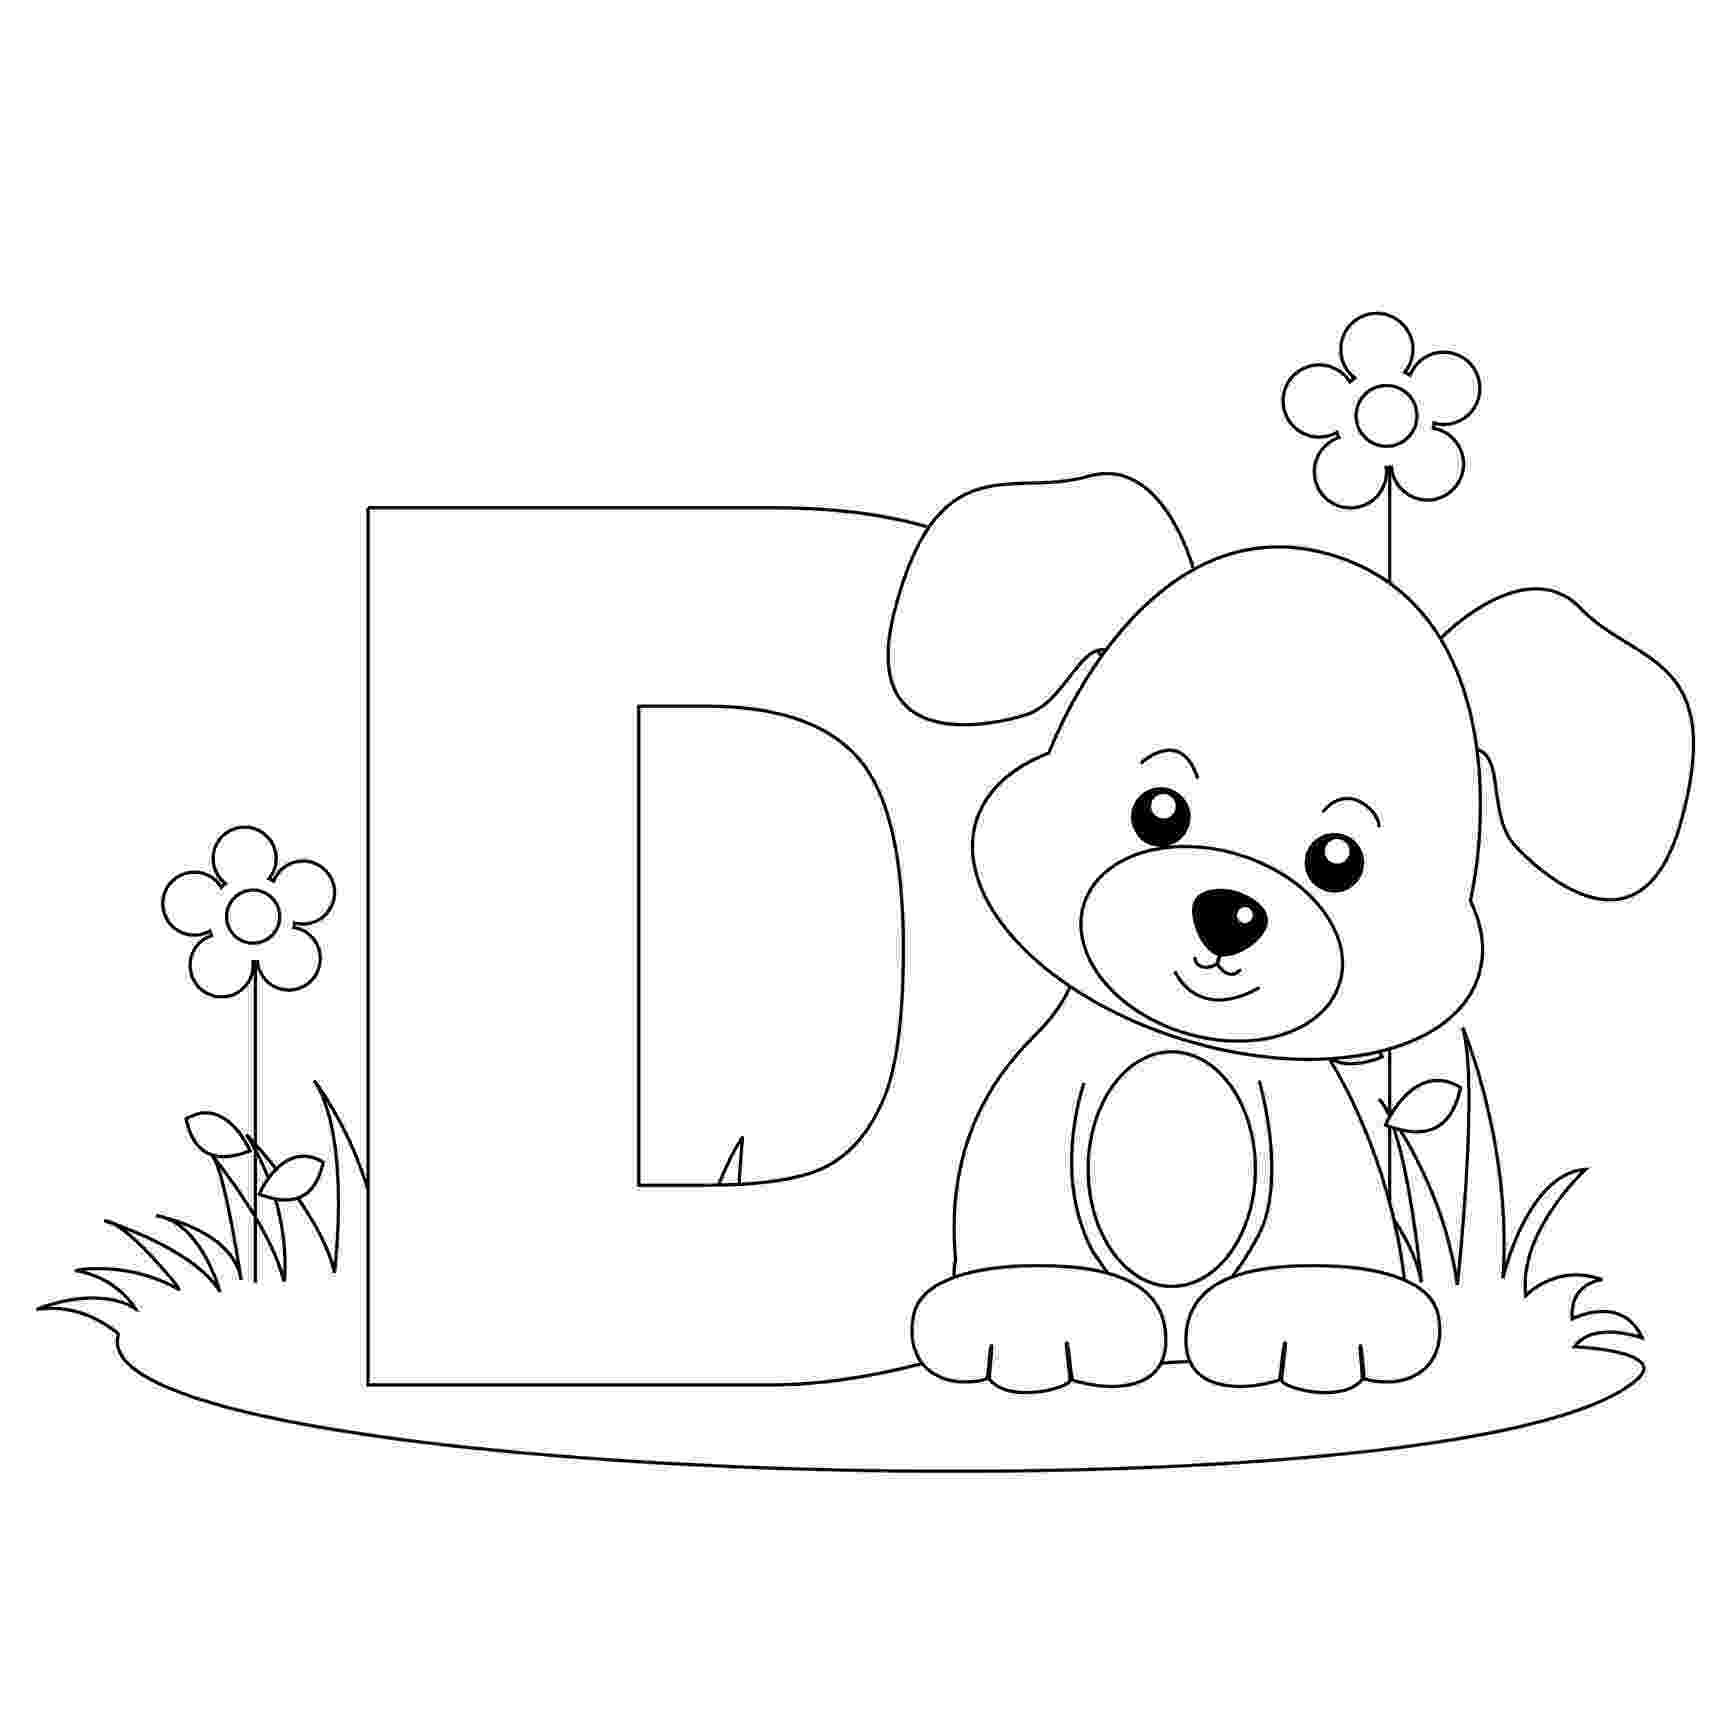 coloring pages letter d letter d is for dolphin coloring page free printable coloring letter pages d